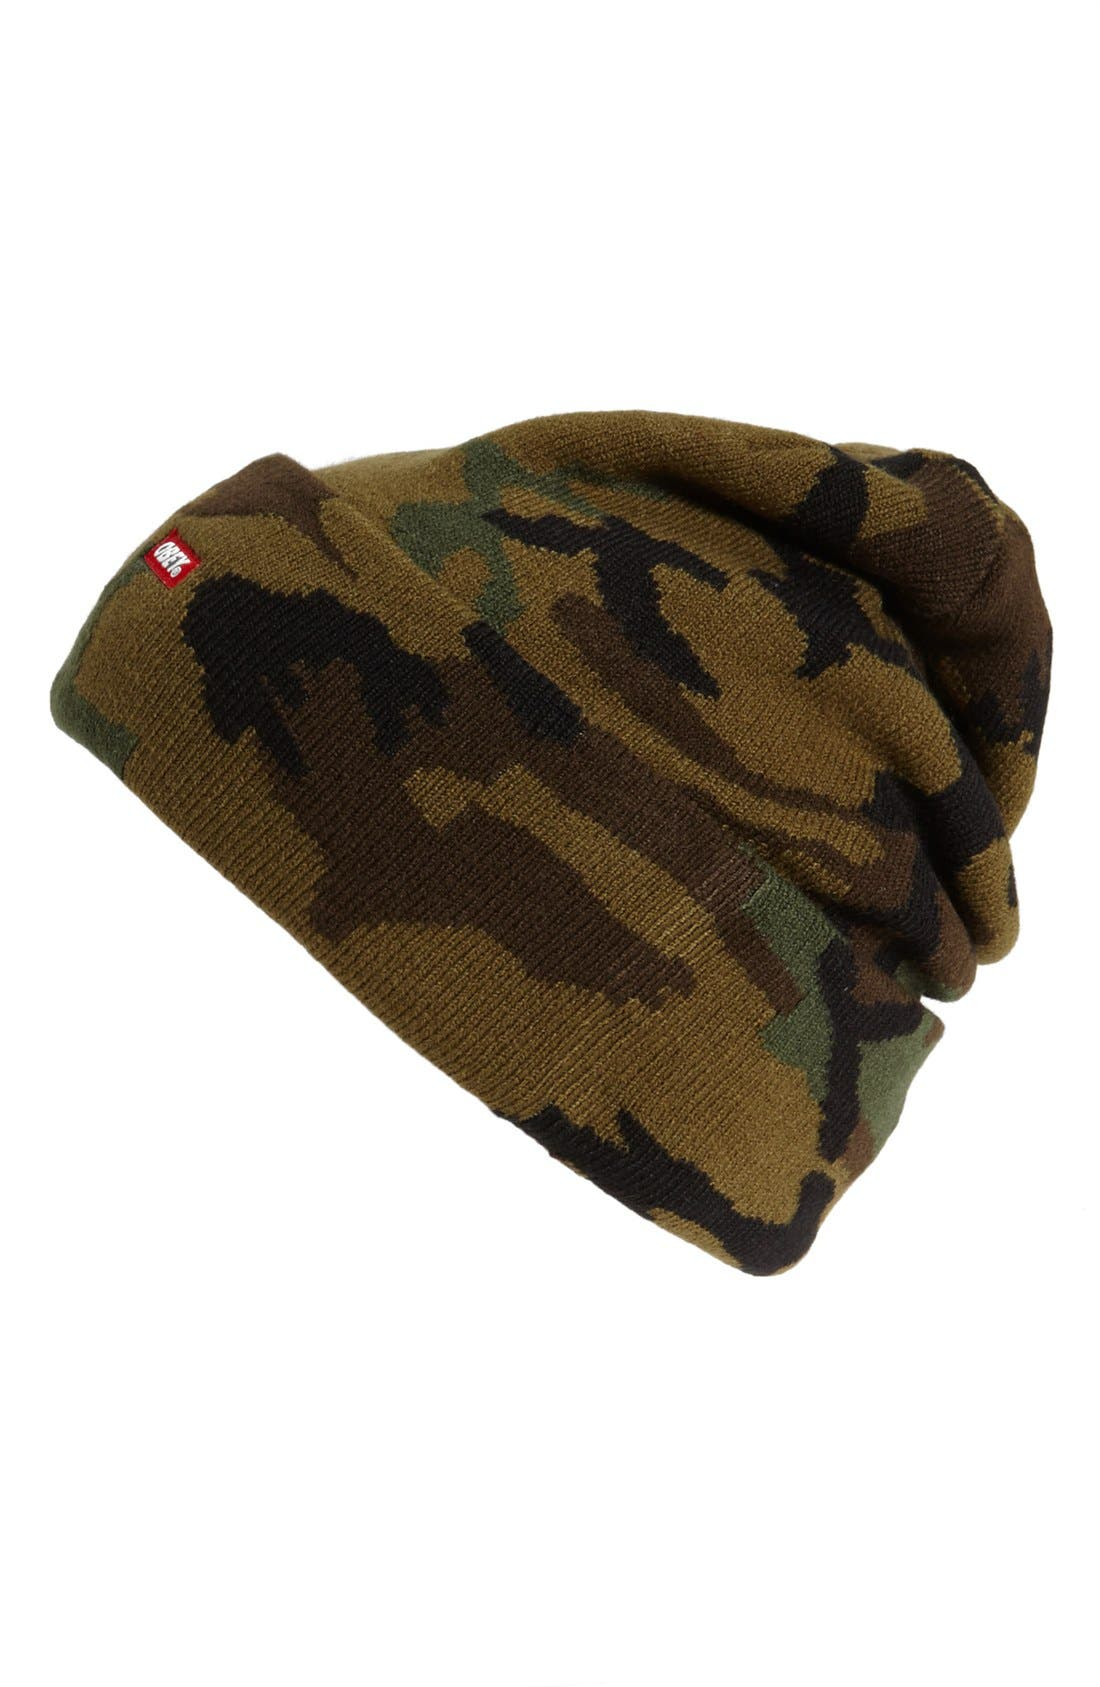 Main Image - Obey 'Infantry' Beanie